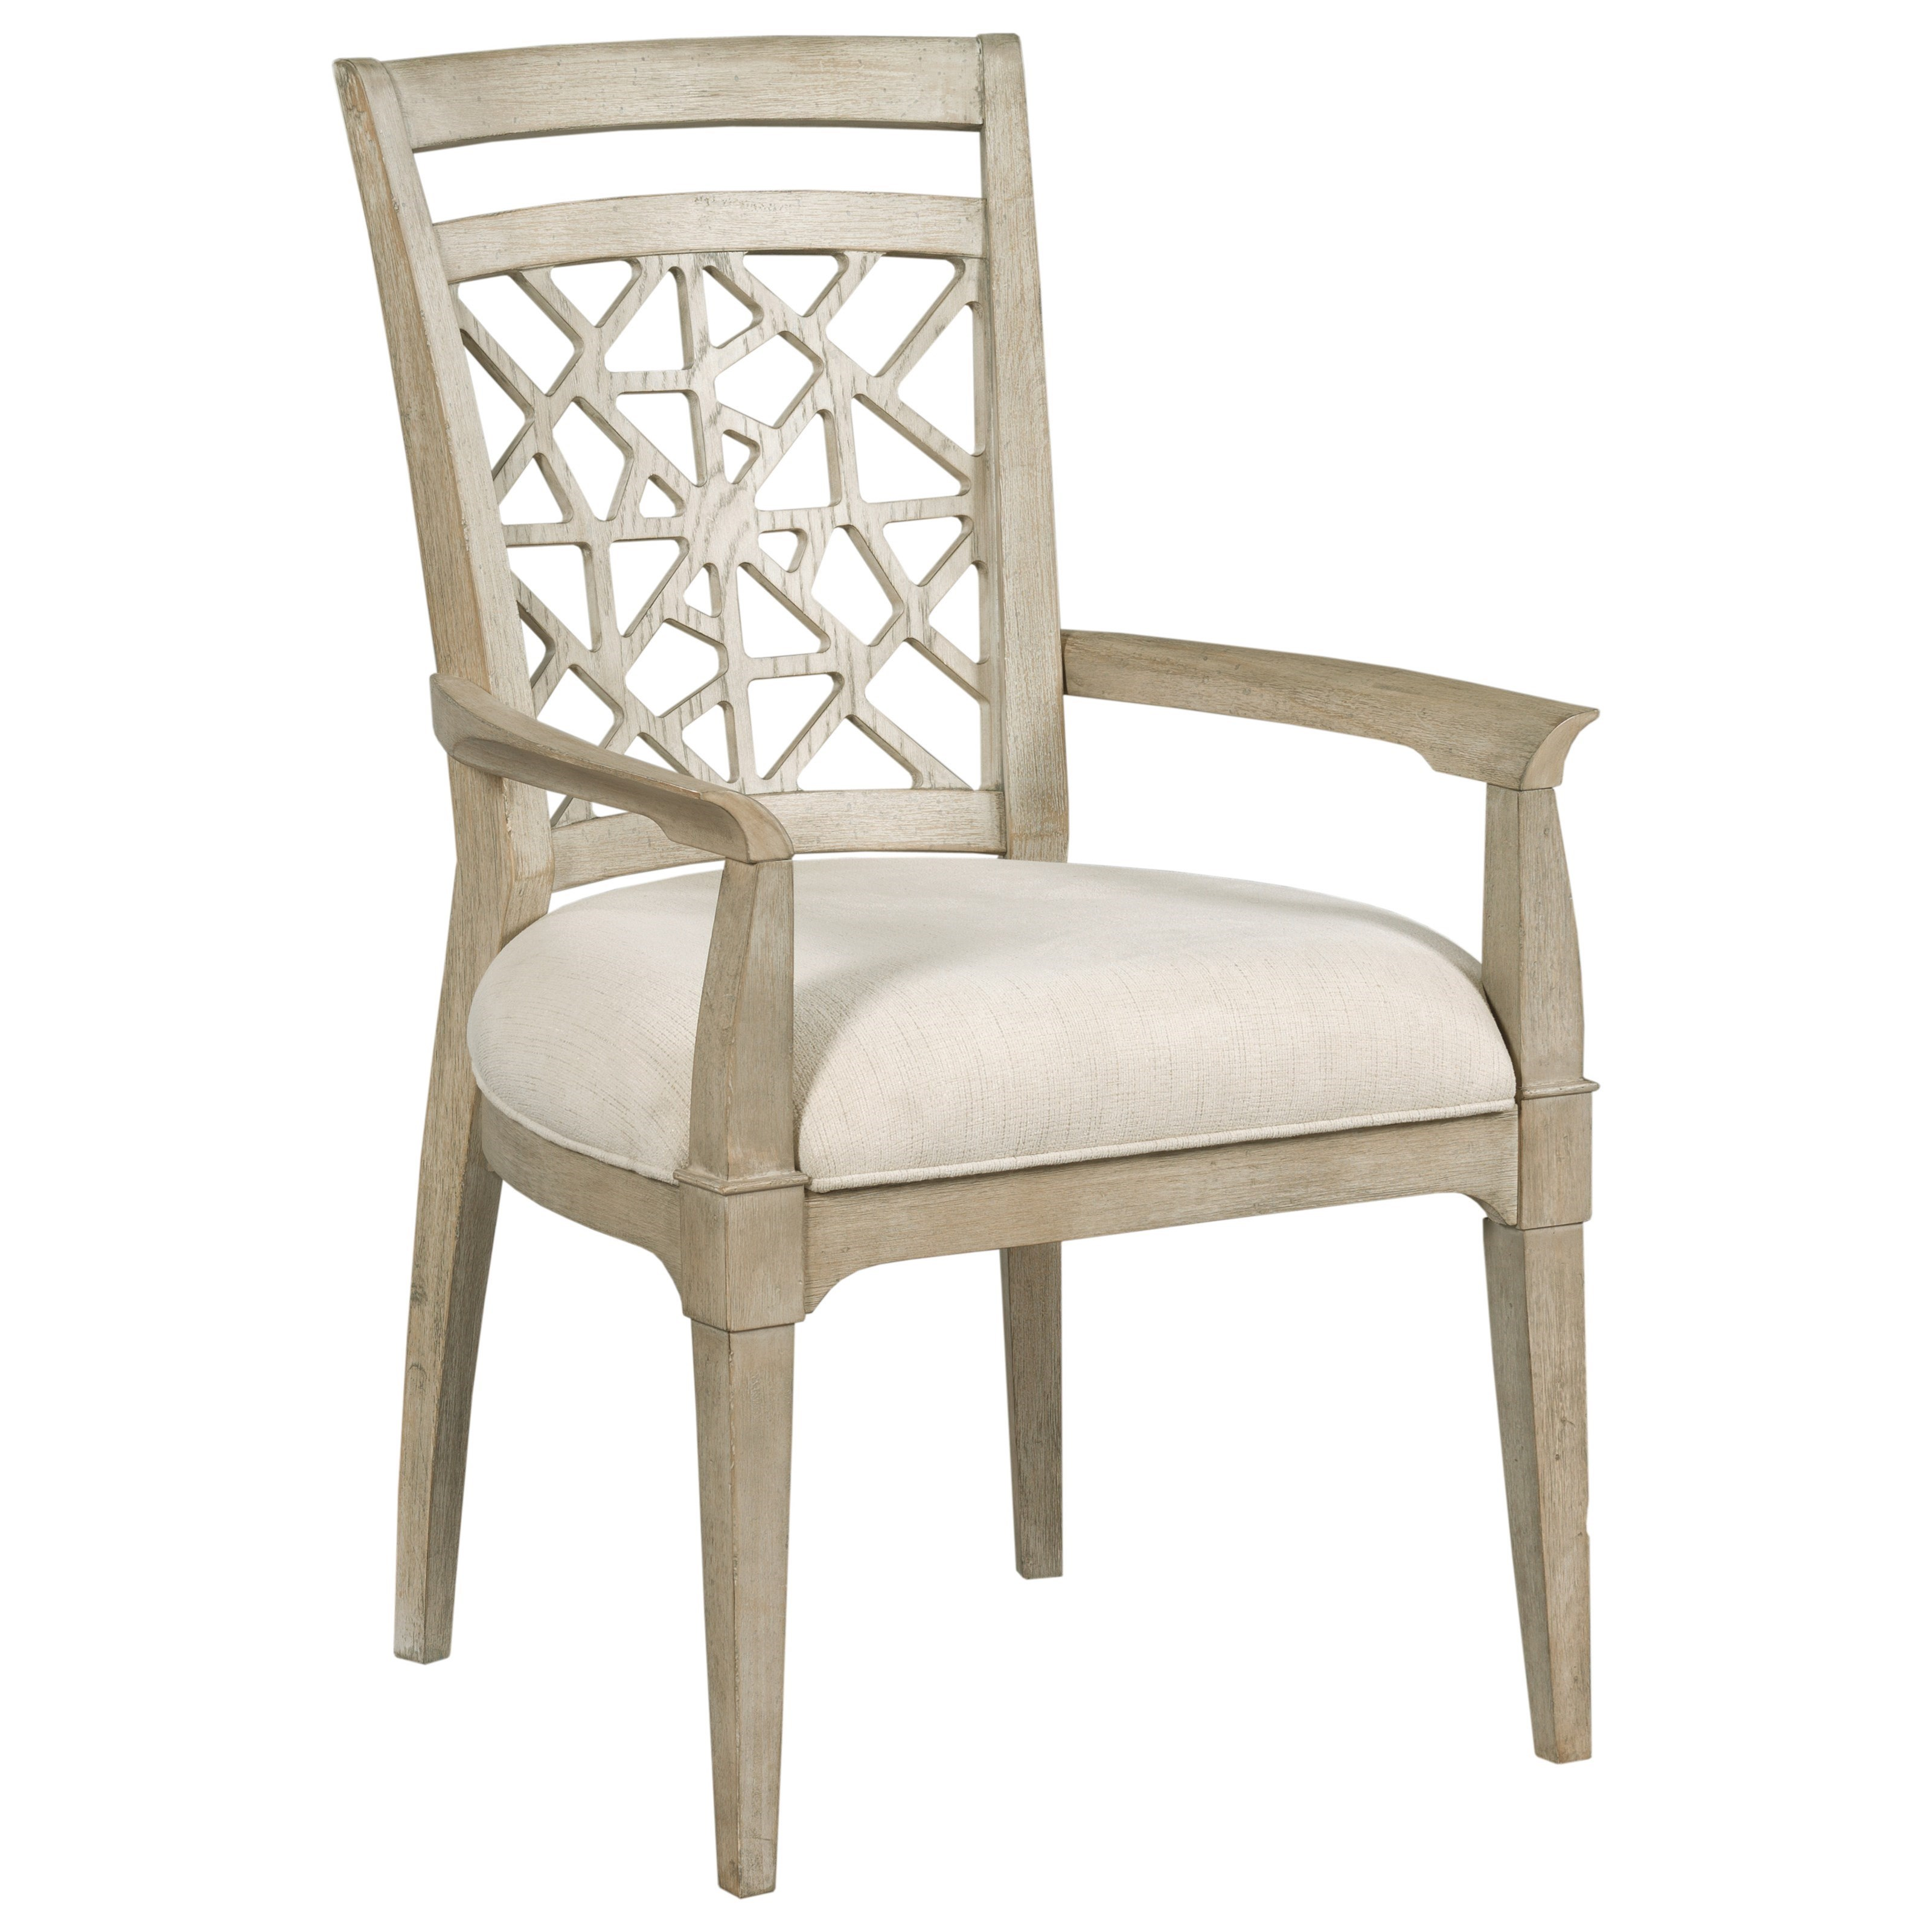 American Drew Vista Relaxed Vintage Essex Arm Chair With